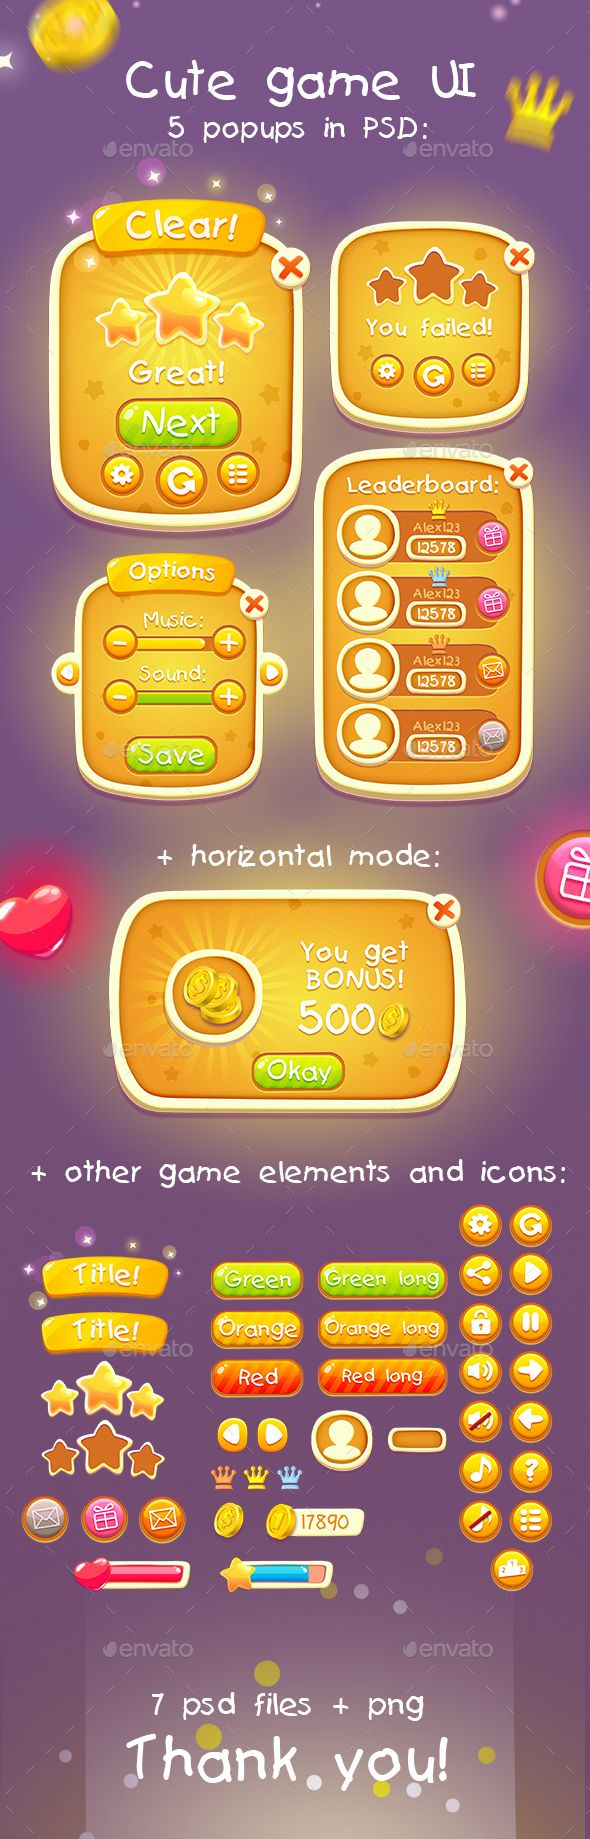 Casual Cute Game UI Asset | Download http://graphicriver.net/item/casual-cute-game-ui-asset/14038697?ref=sinzo